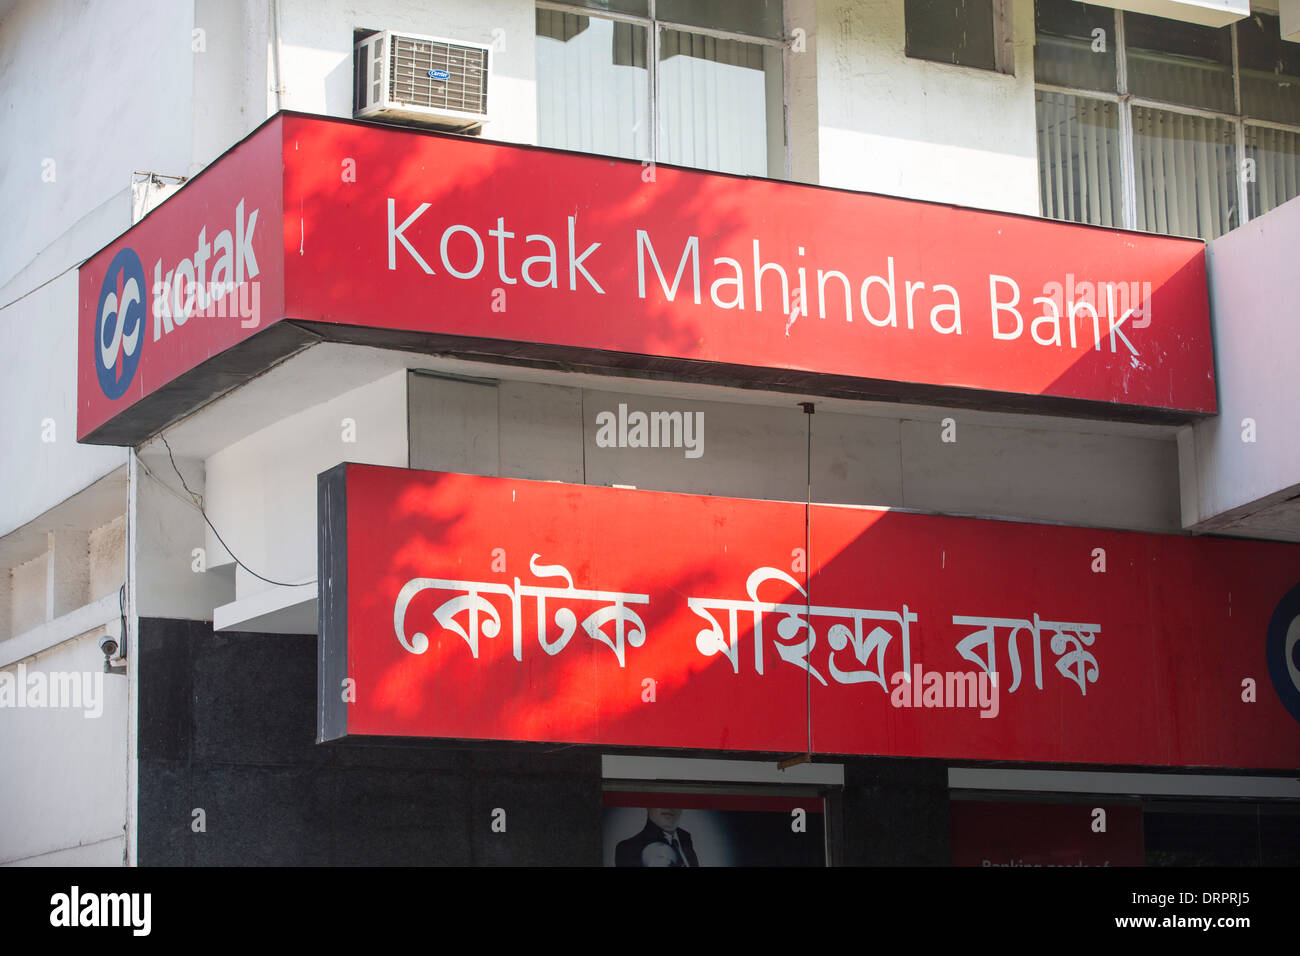 A branch of the Kotak Mahindra Bank in Calcutta, India. - Stock Image